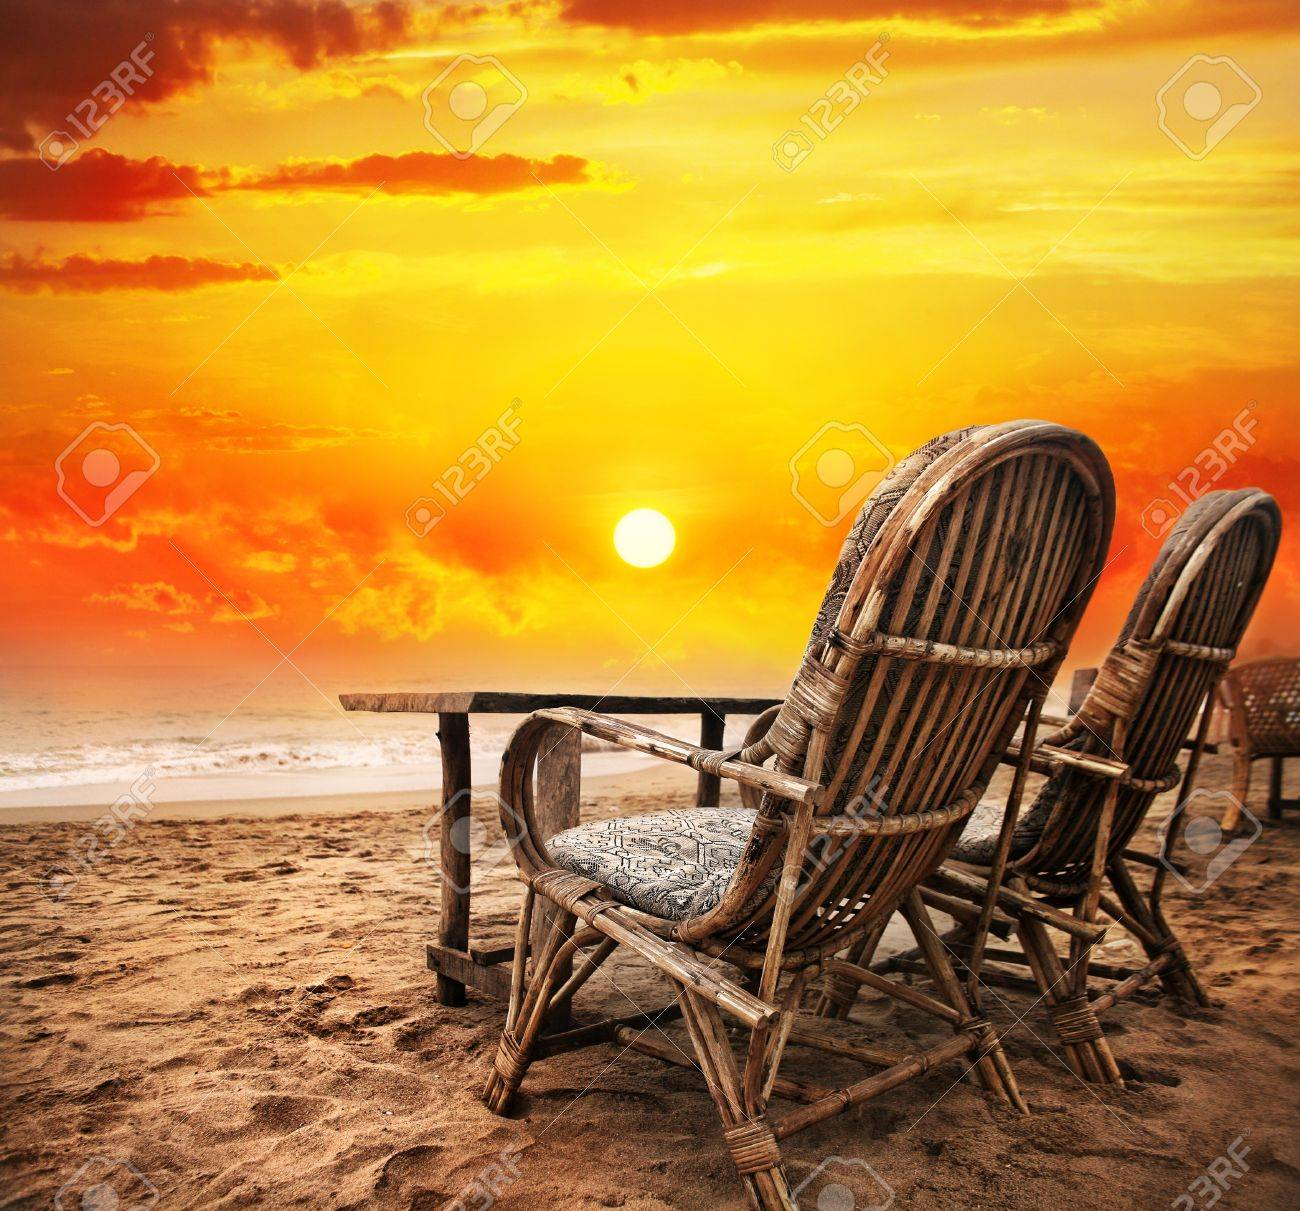 Beach sunset with chairs - Two Chairs With View To The Orange Sunset Sky And Ocean In Goa India Stock